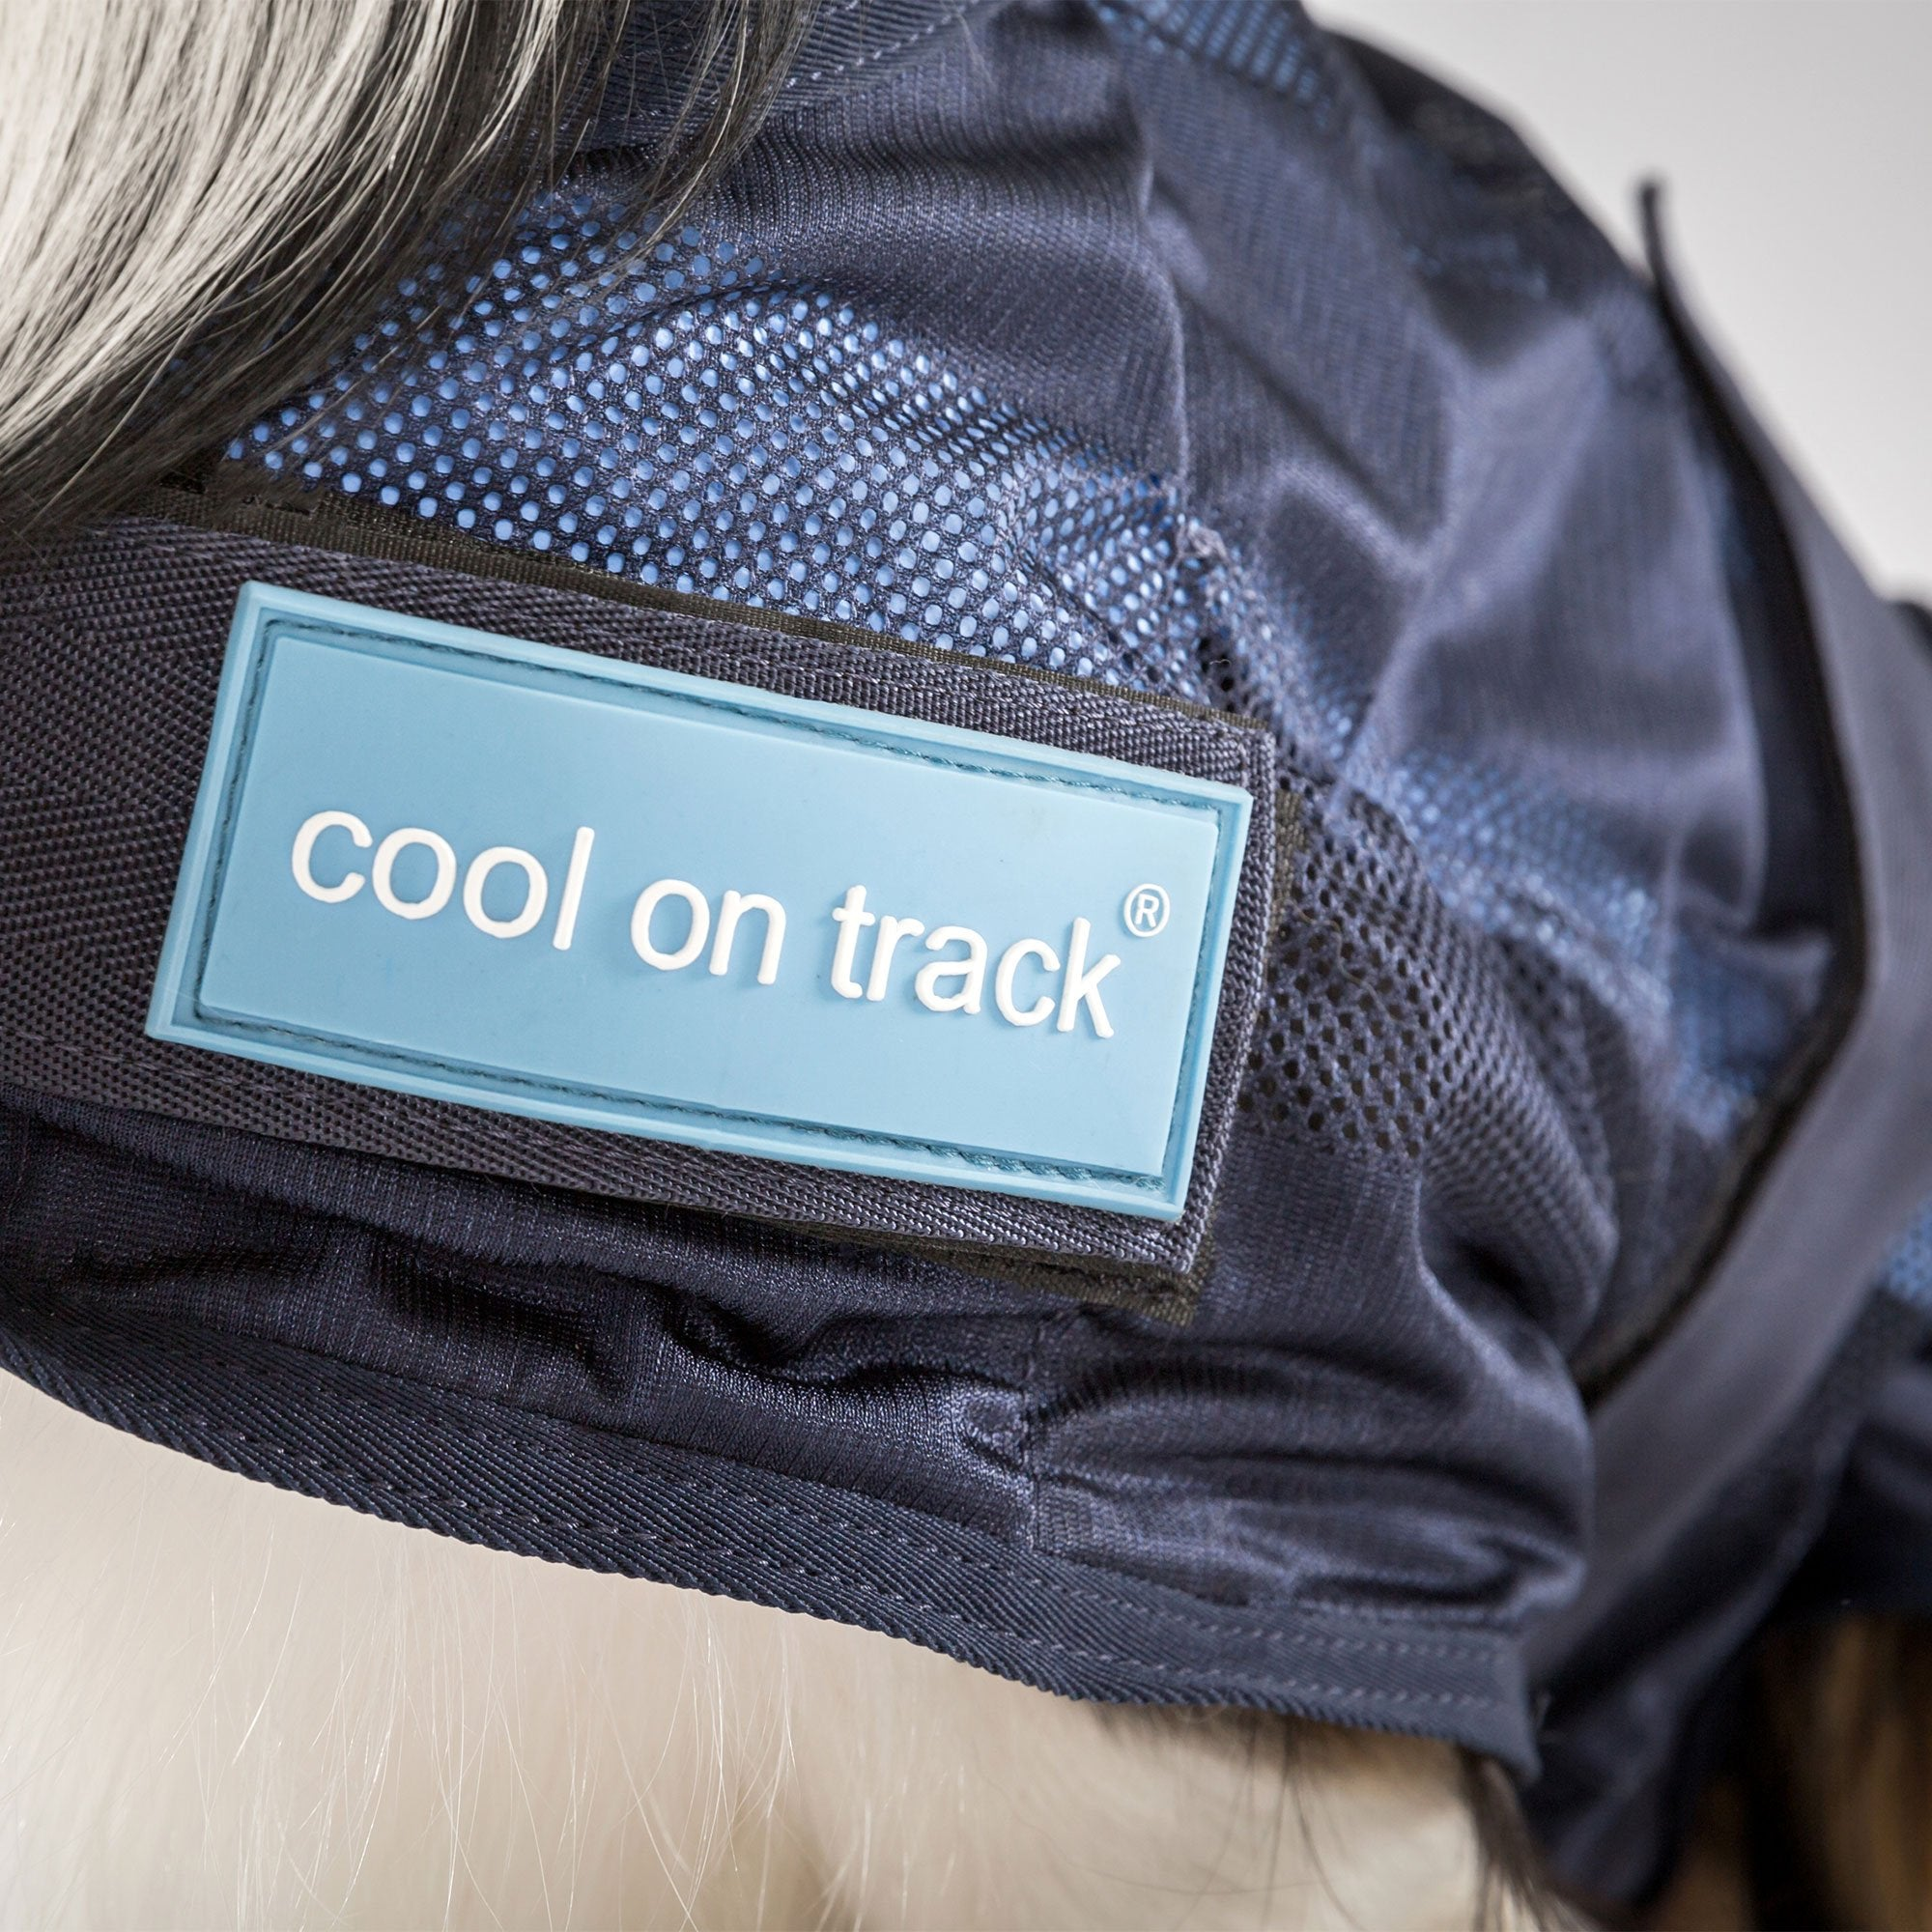 Cool on track Kyltäcke Hund - Back on Track Sverige (5300240318619)